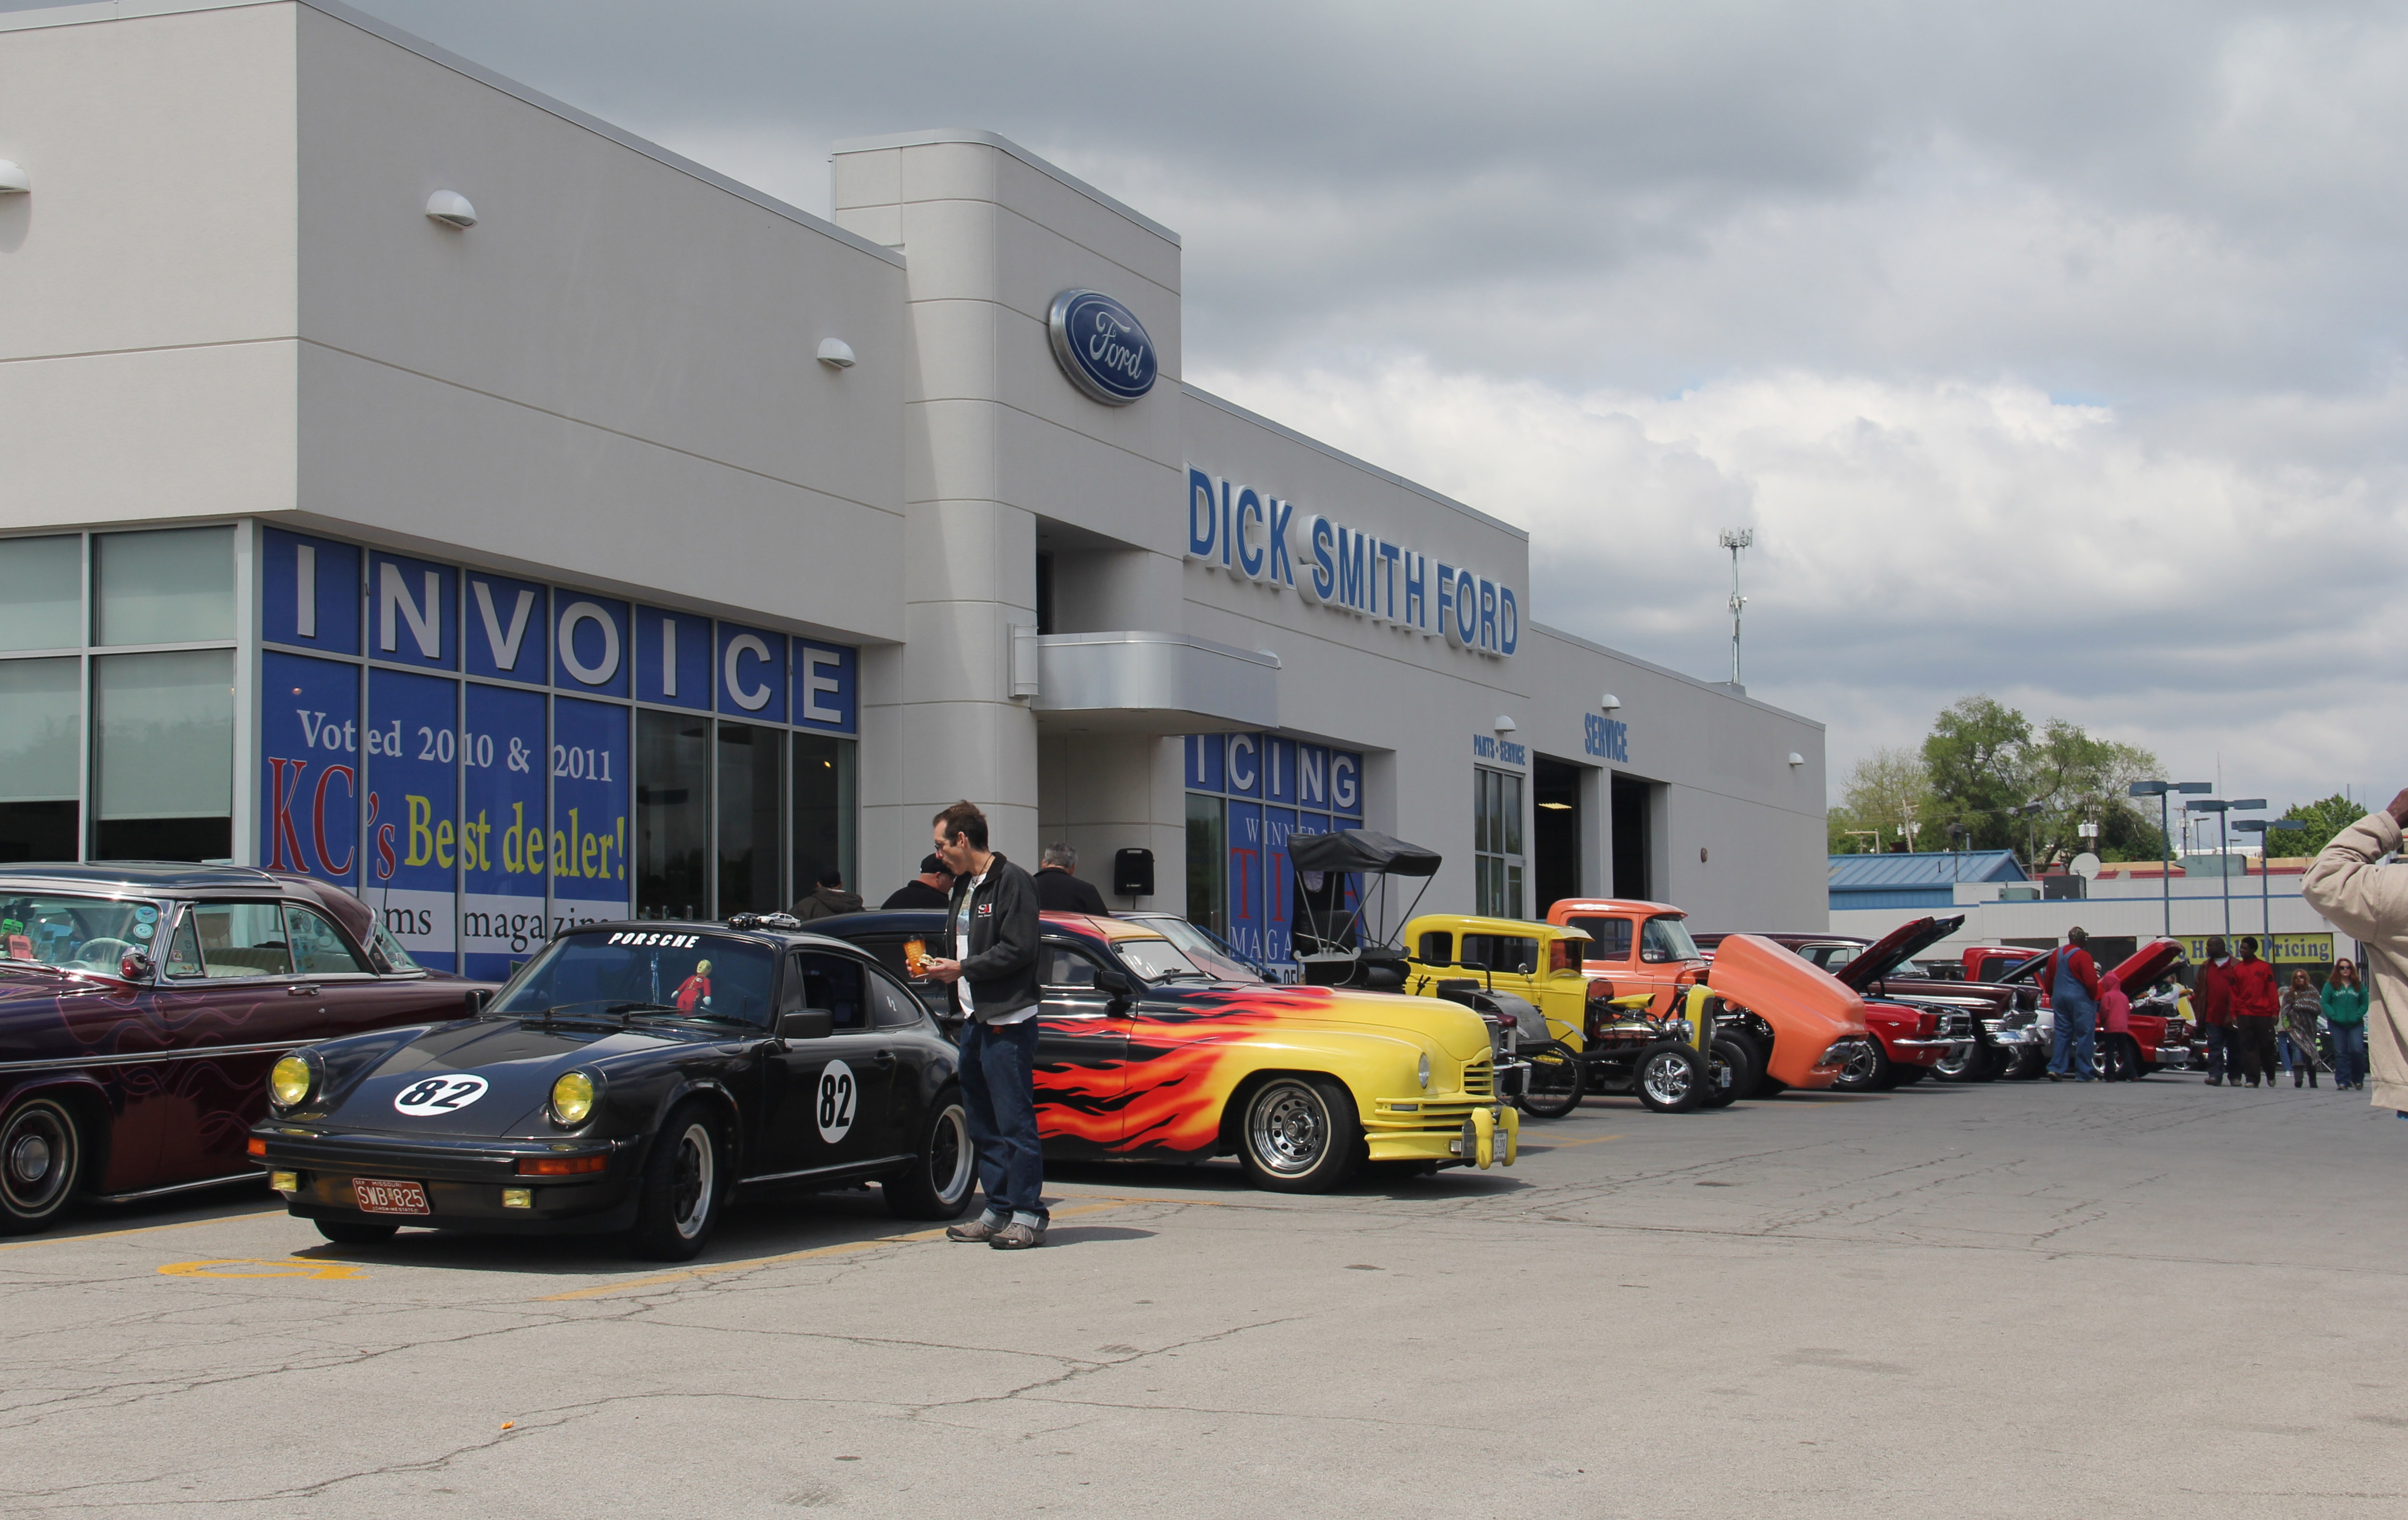 Dick Smith Ford, Raytown MO